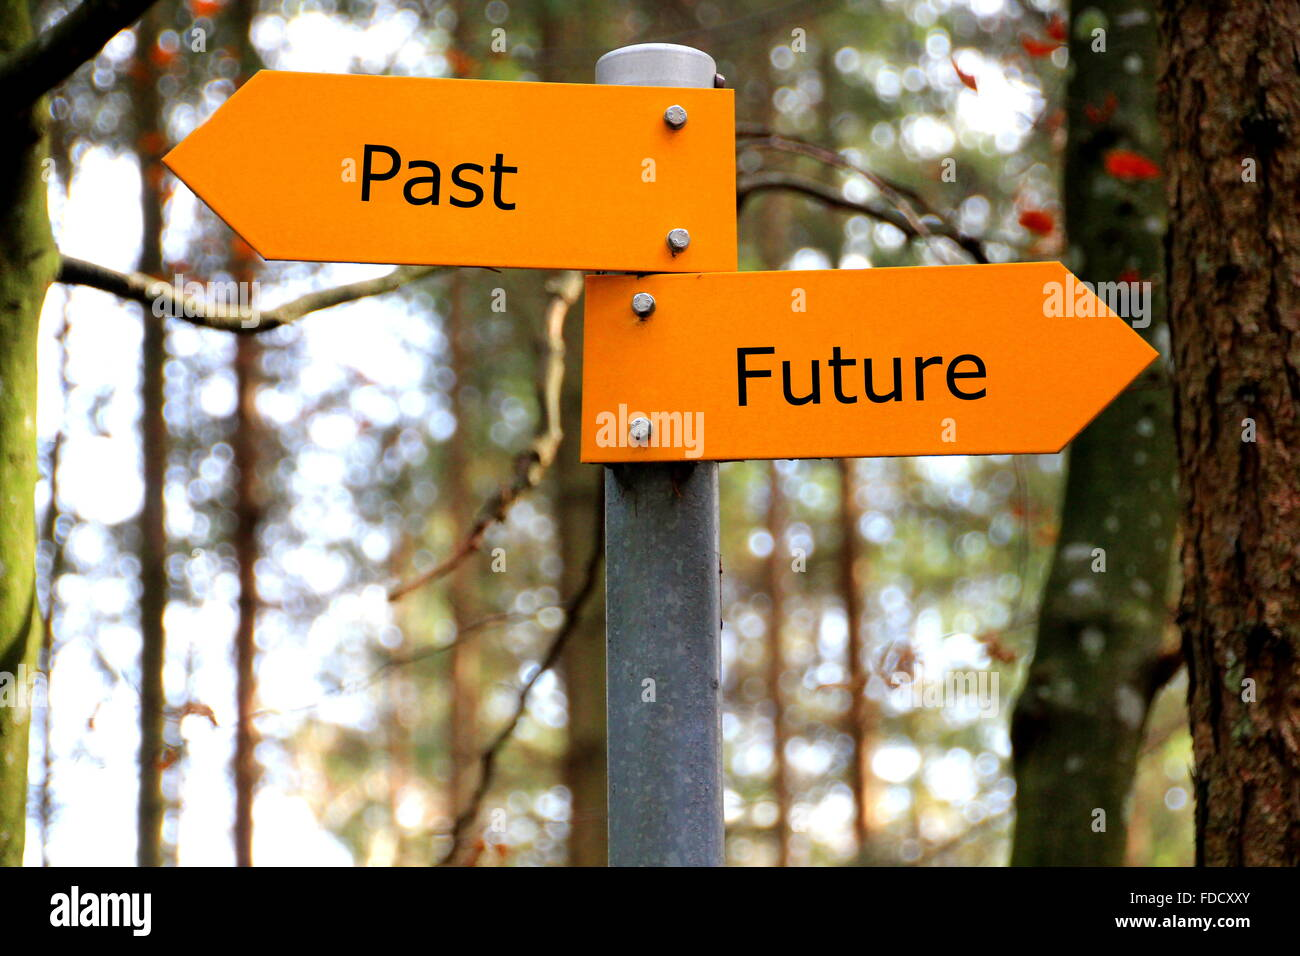 past and future written on a yellow direction sign - Stock Image